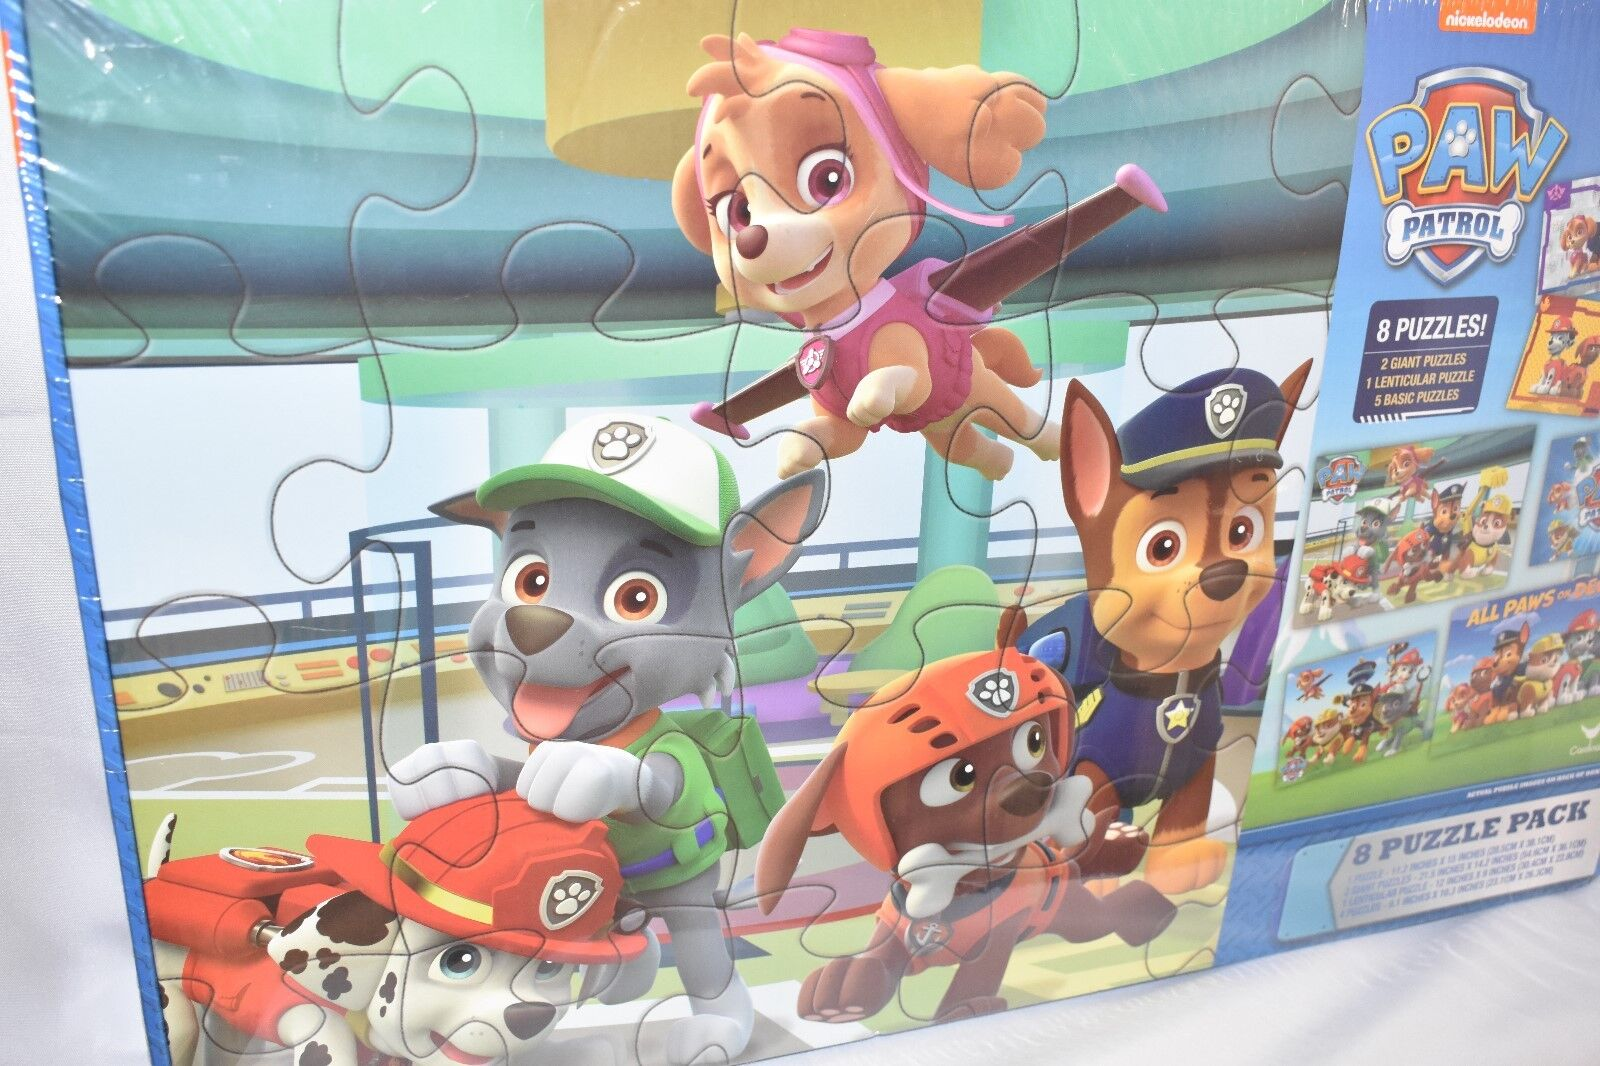 Brand New, Paw Patrol 8 Puzzle Pack, Factory Sealed, Nickelo